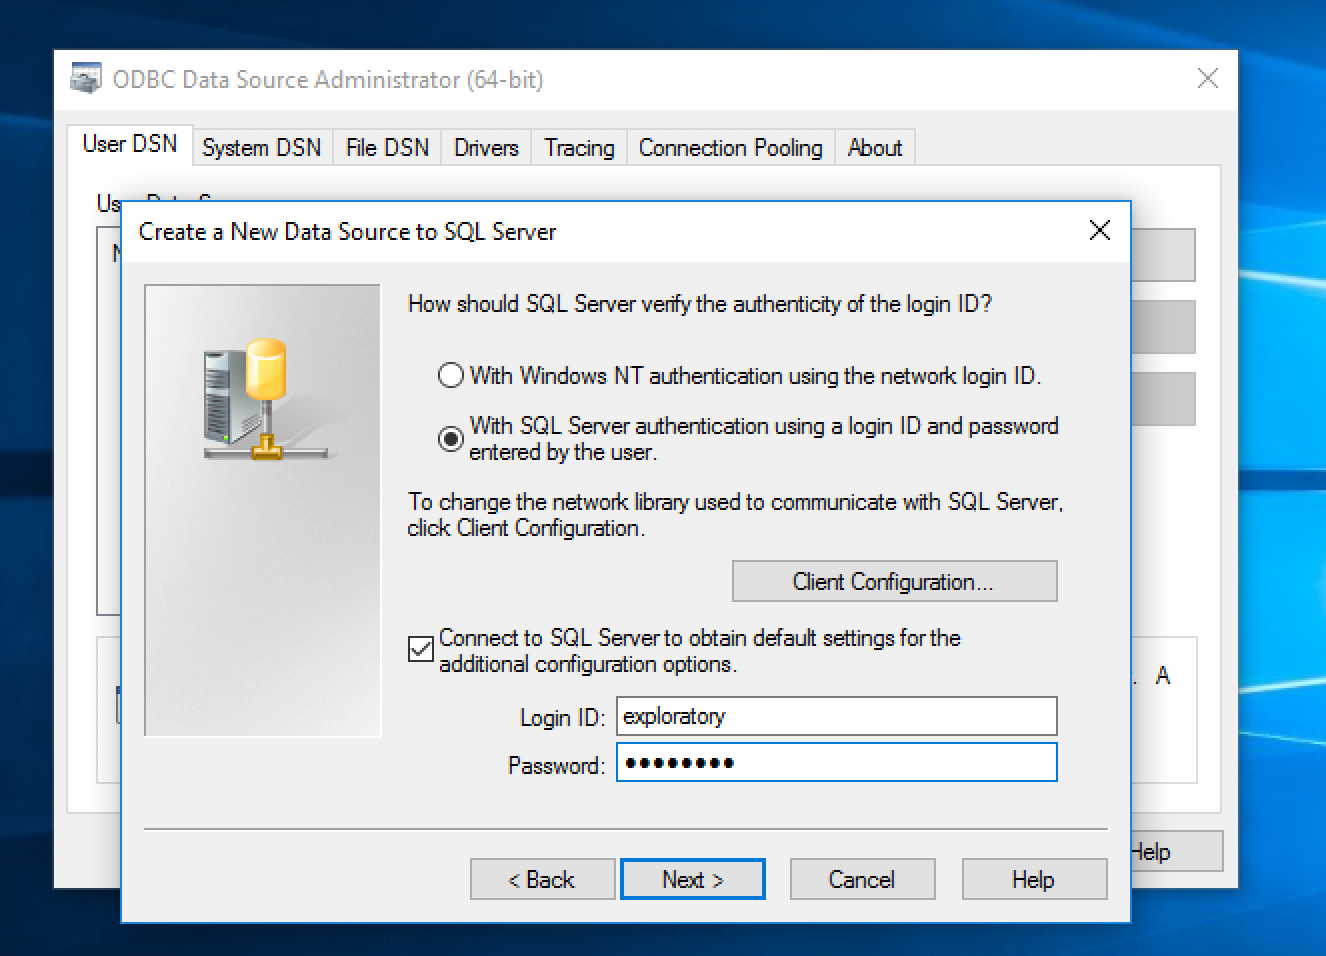 Connecting to MS SQL Server through ODBC from Windows - Exploratory